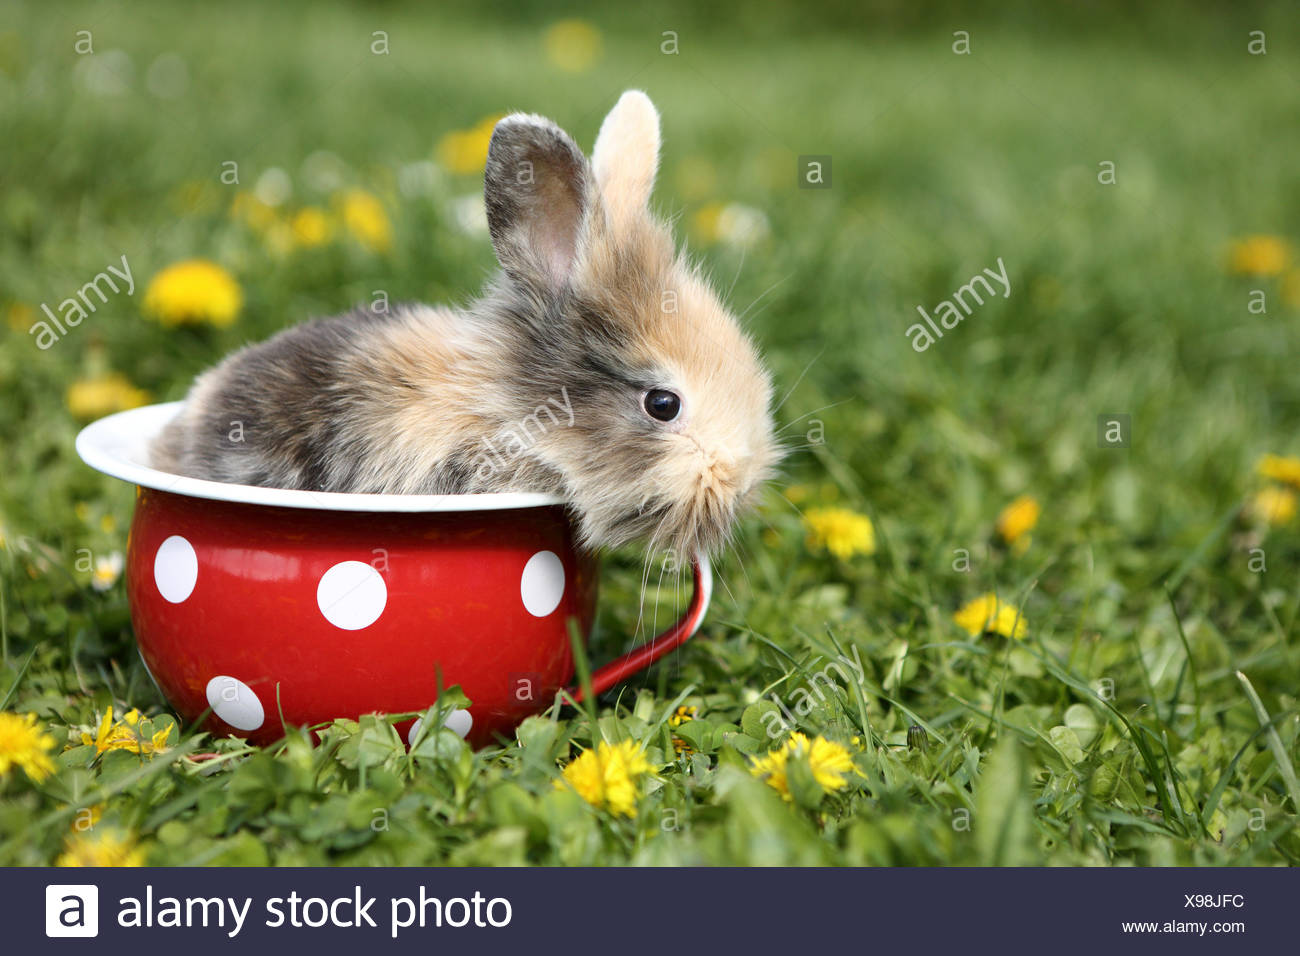 Dwarf Rabbit. Young in a red chamber pot with white polka dots, in a flowering meadow. Germany - Stock Image